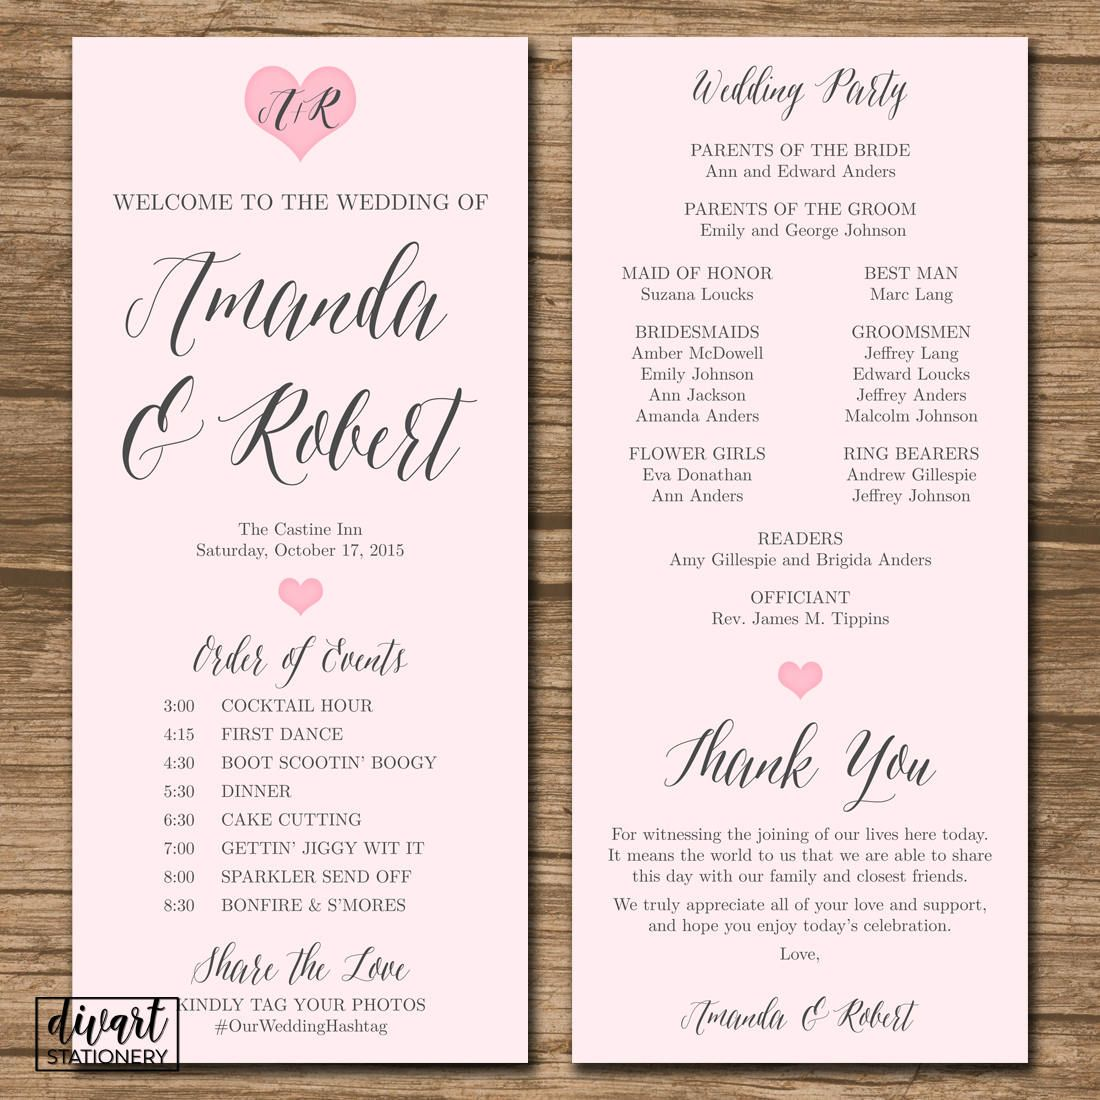 Wedding Program Ceremony Program Order Of Events Printable Files Double Sided Blush Pink H Wedding Programs Ceremony Programs Order Of Wedding Ceremony